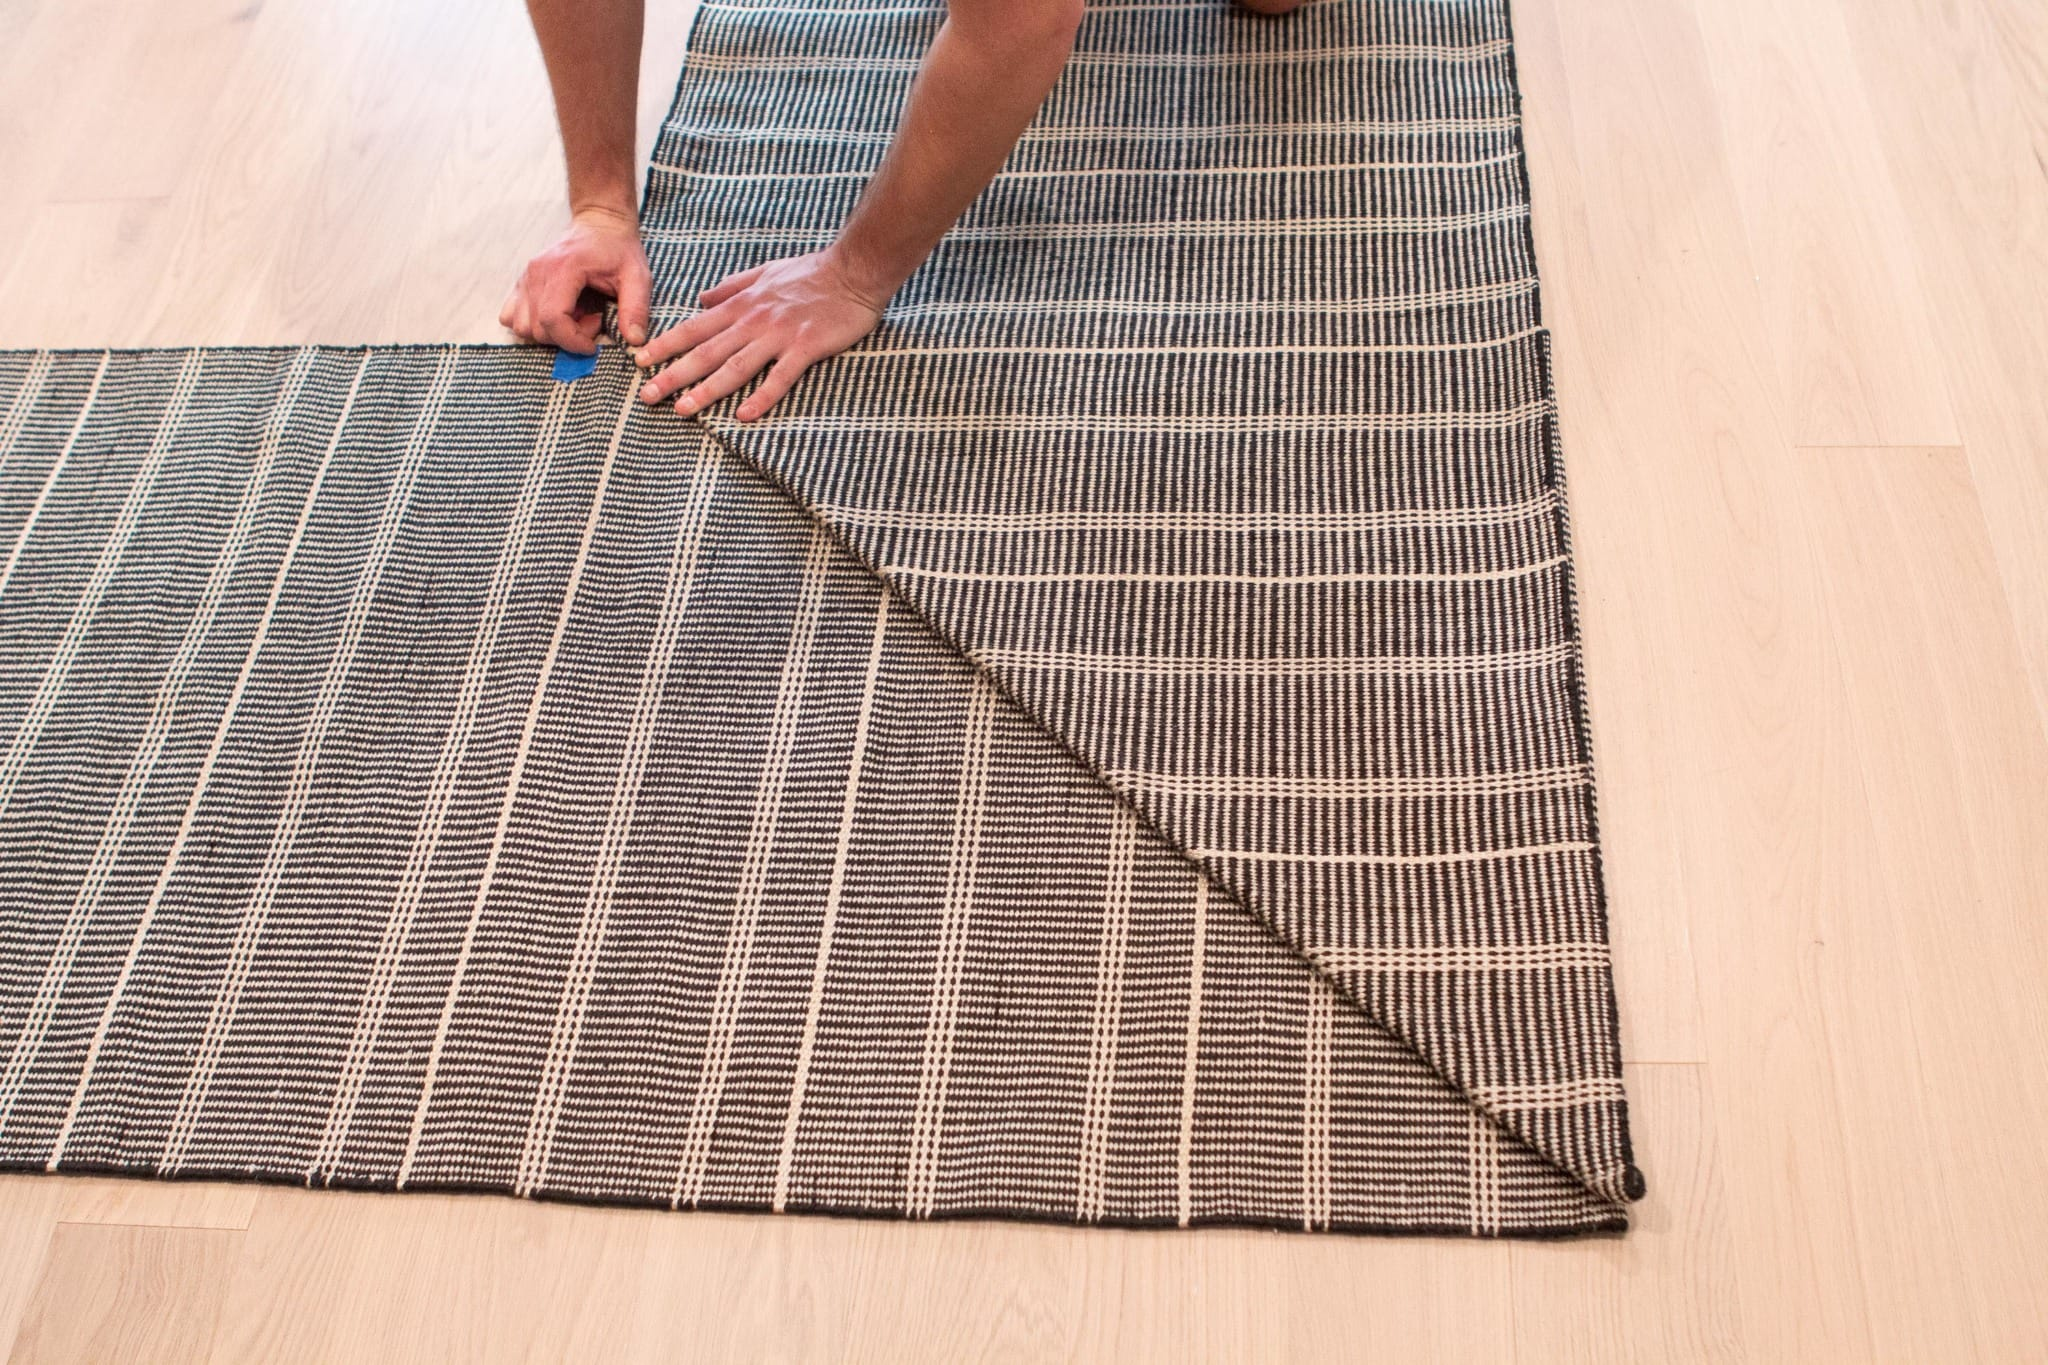 How to install a stair runner on a landing